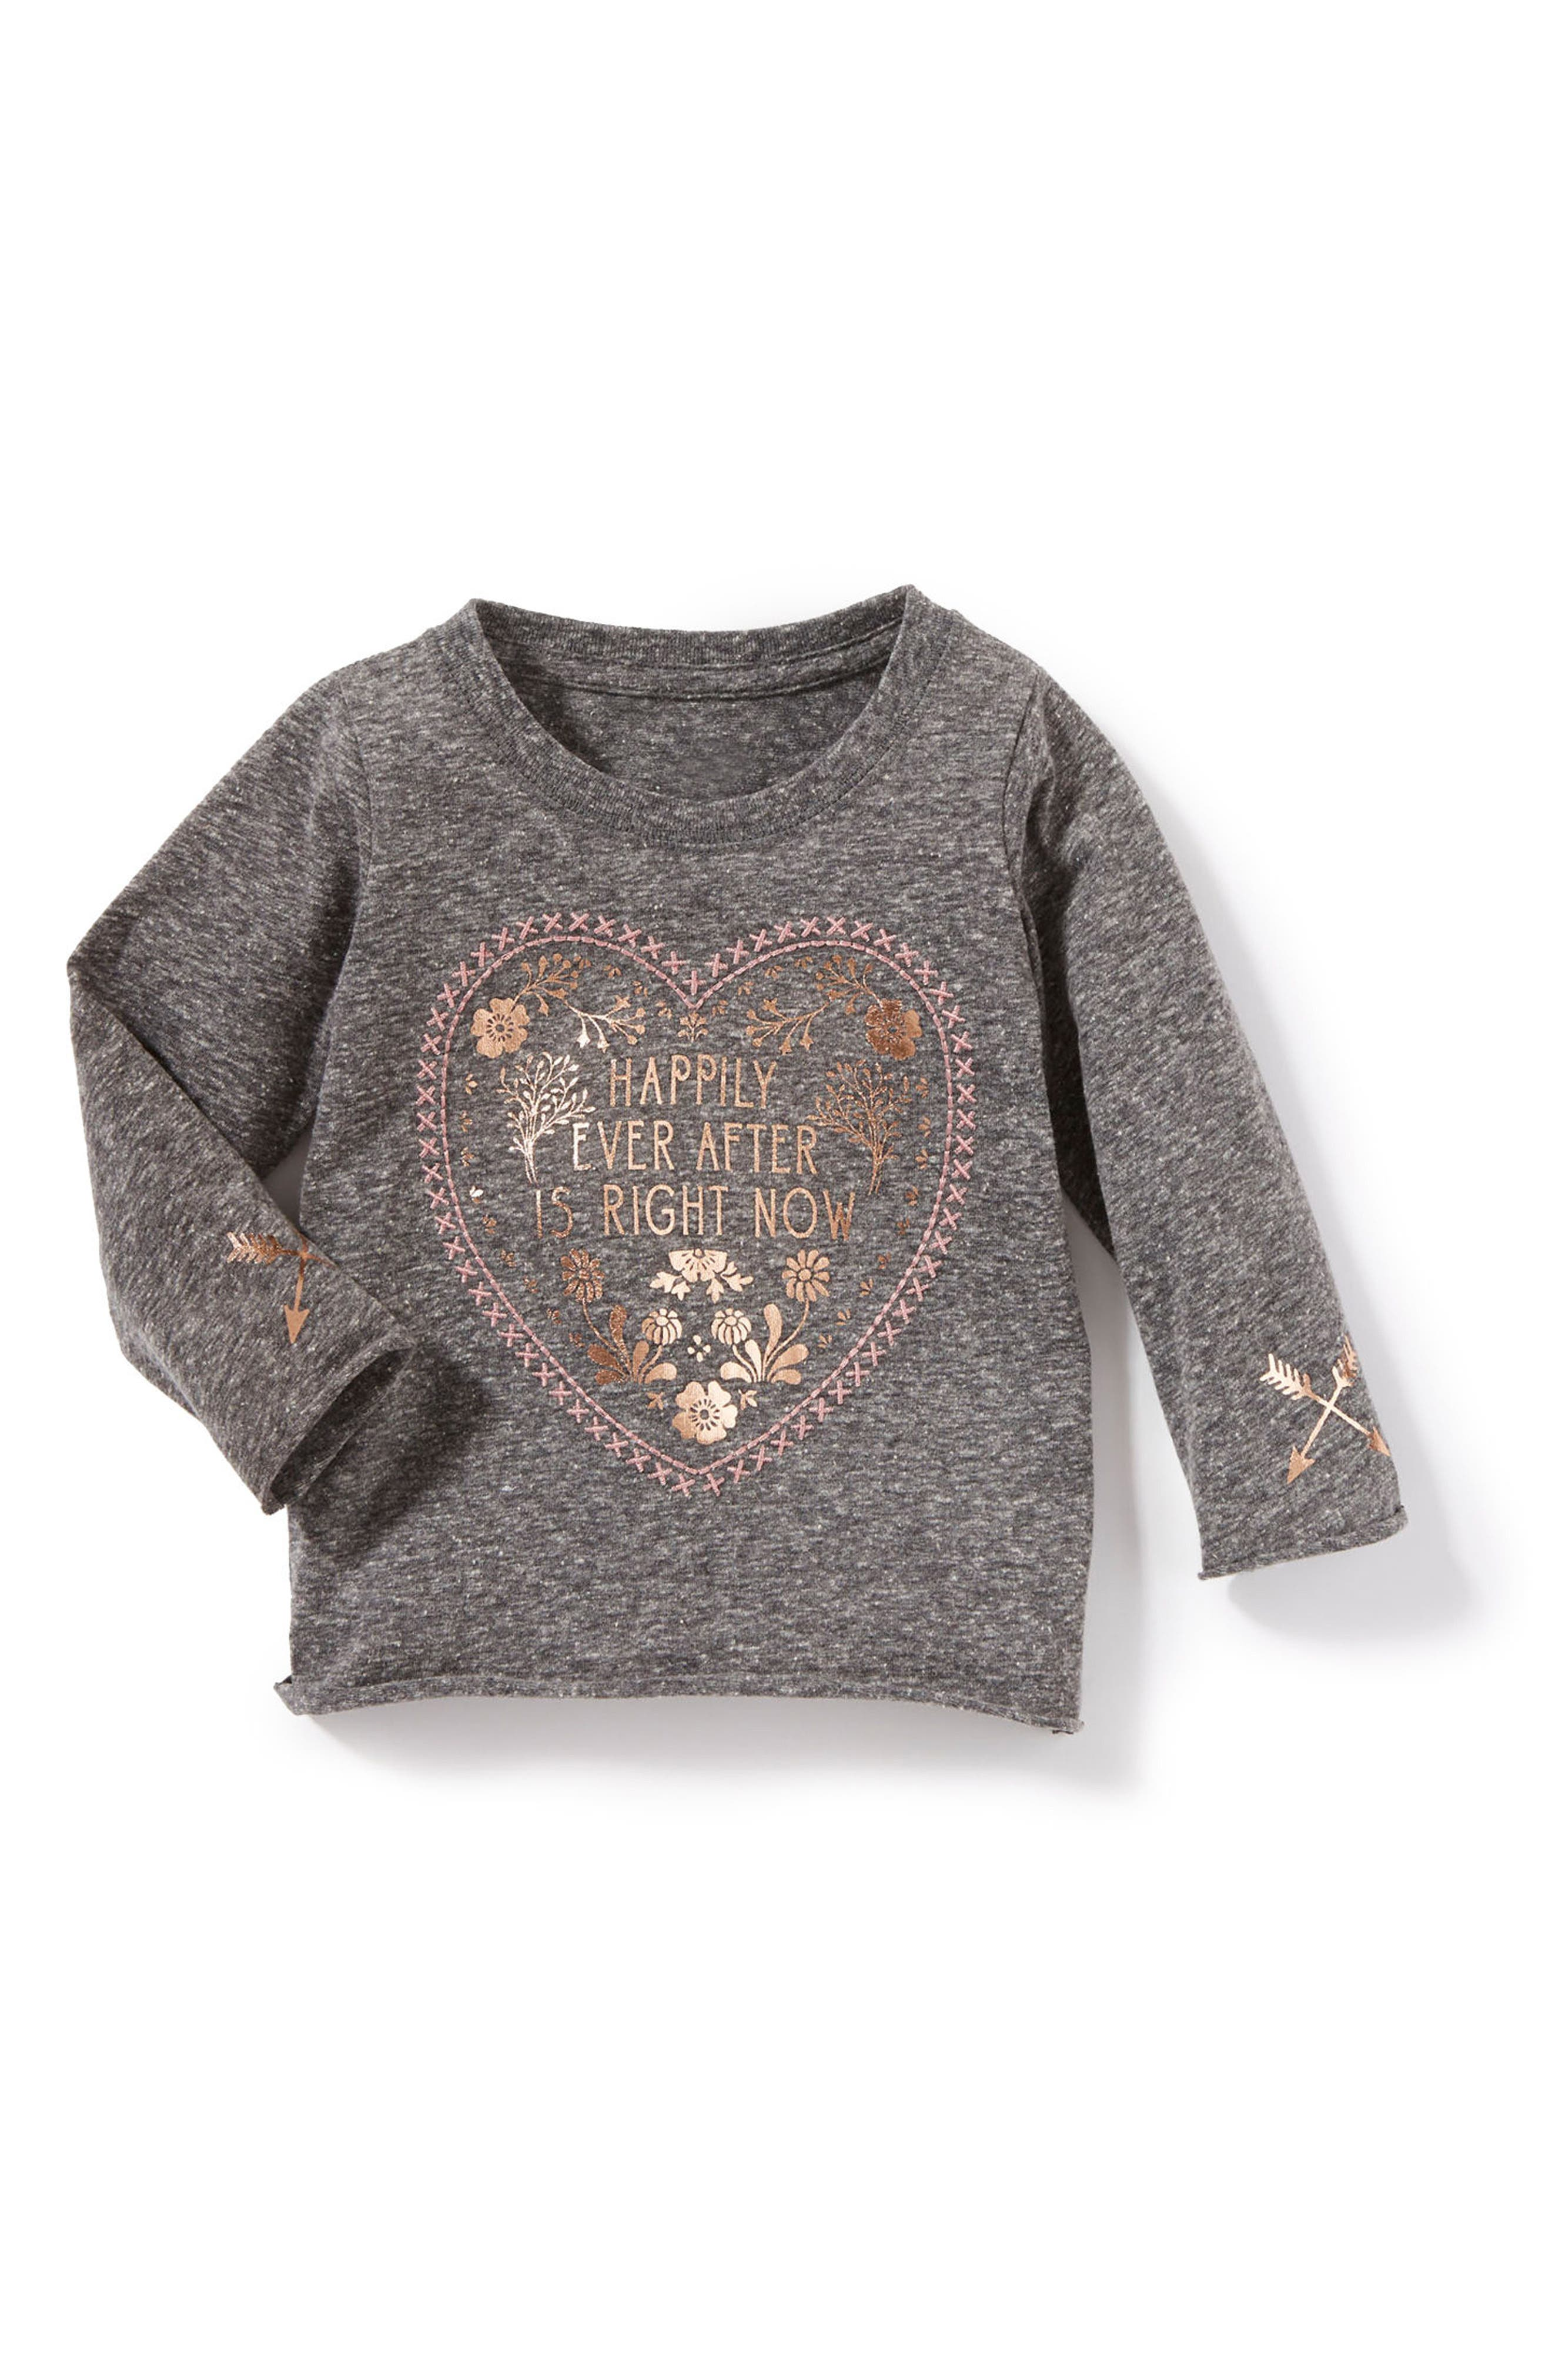 Happily Ever After Graphic Tee,                             Main thumbnail 1, color,                             Heather Grey